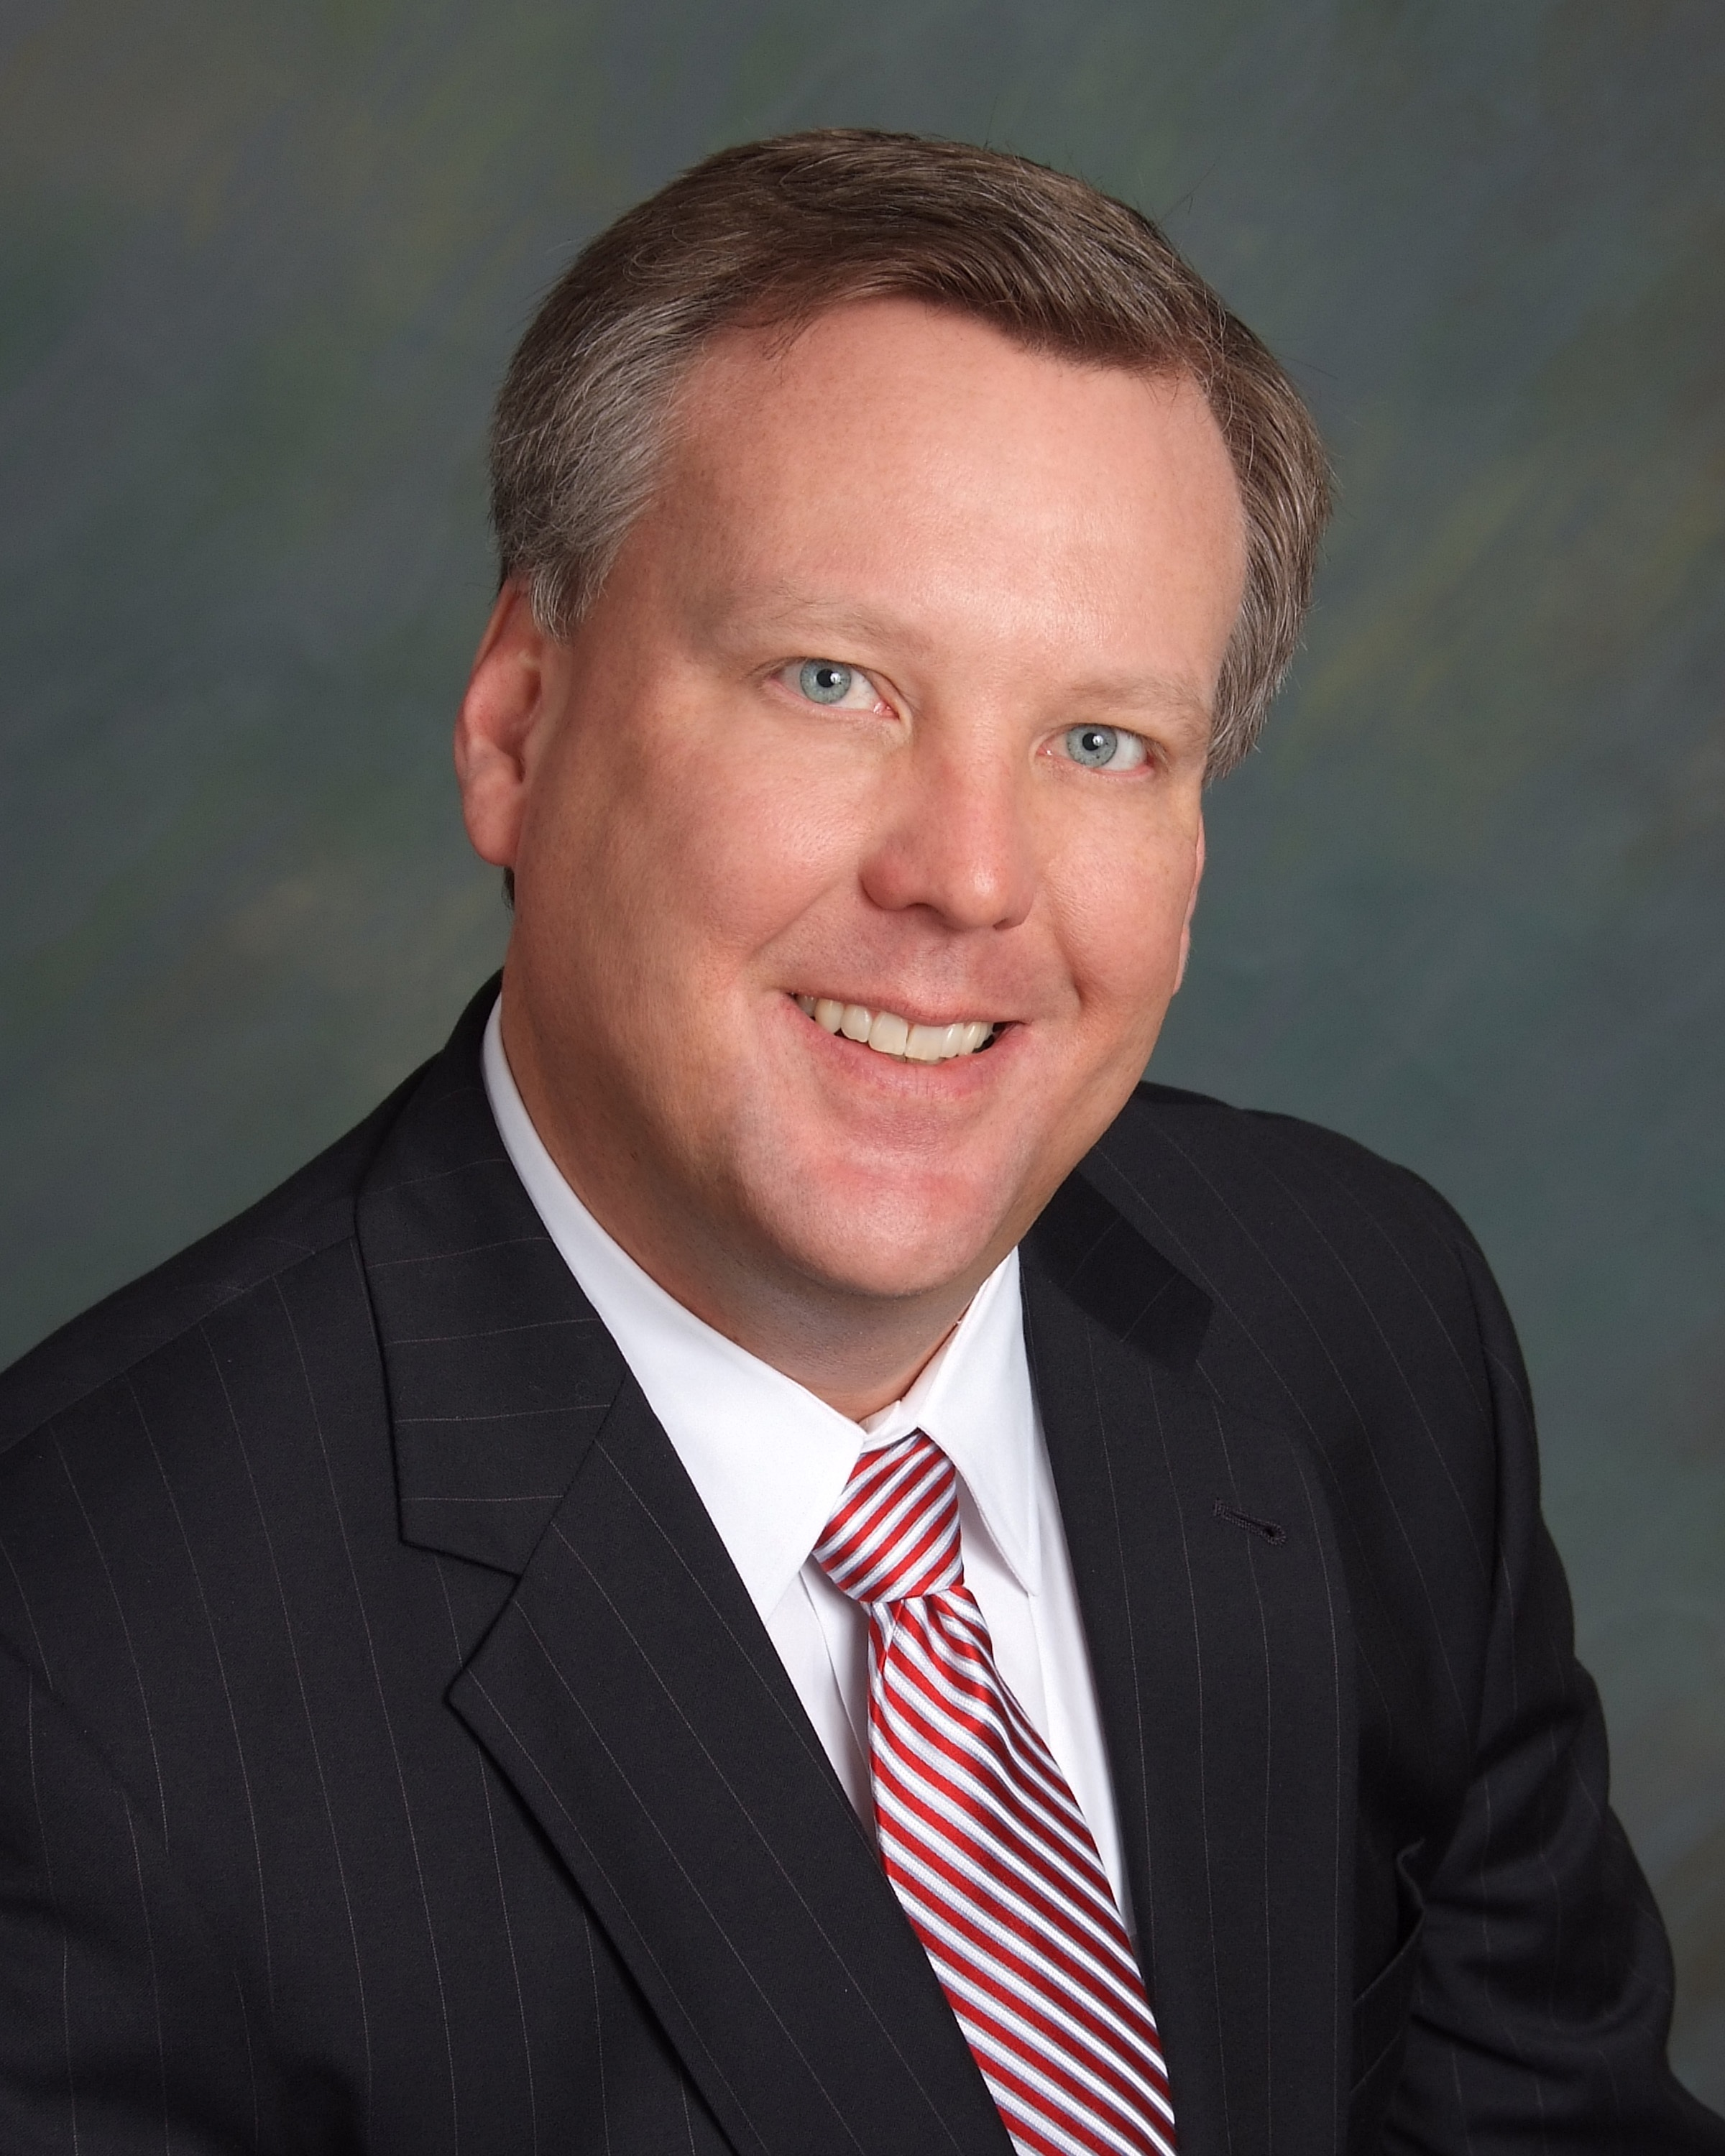 : Judge Brian Poindexter will throw his hat into the ring in 2014 for a Superior Court Seat